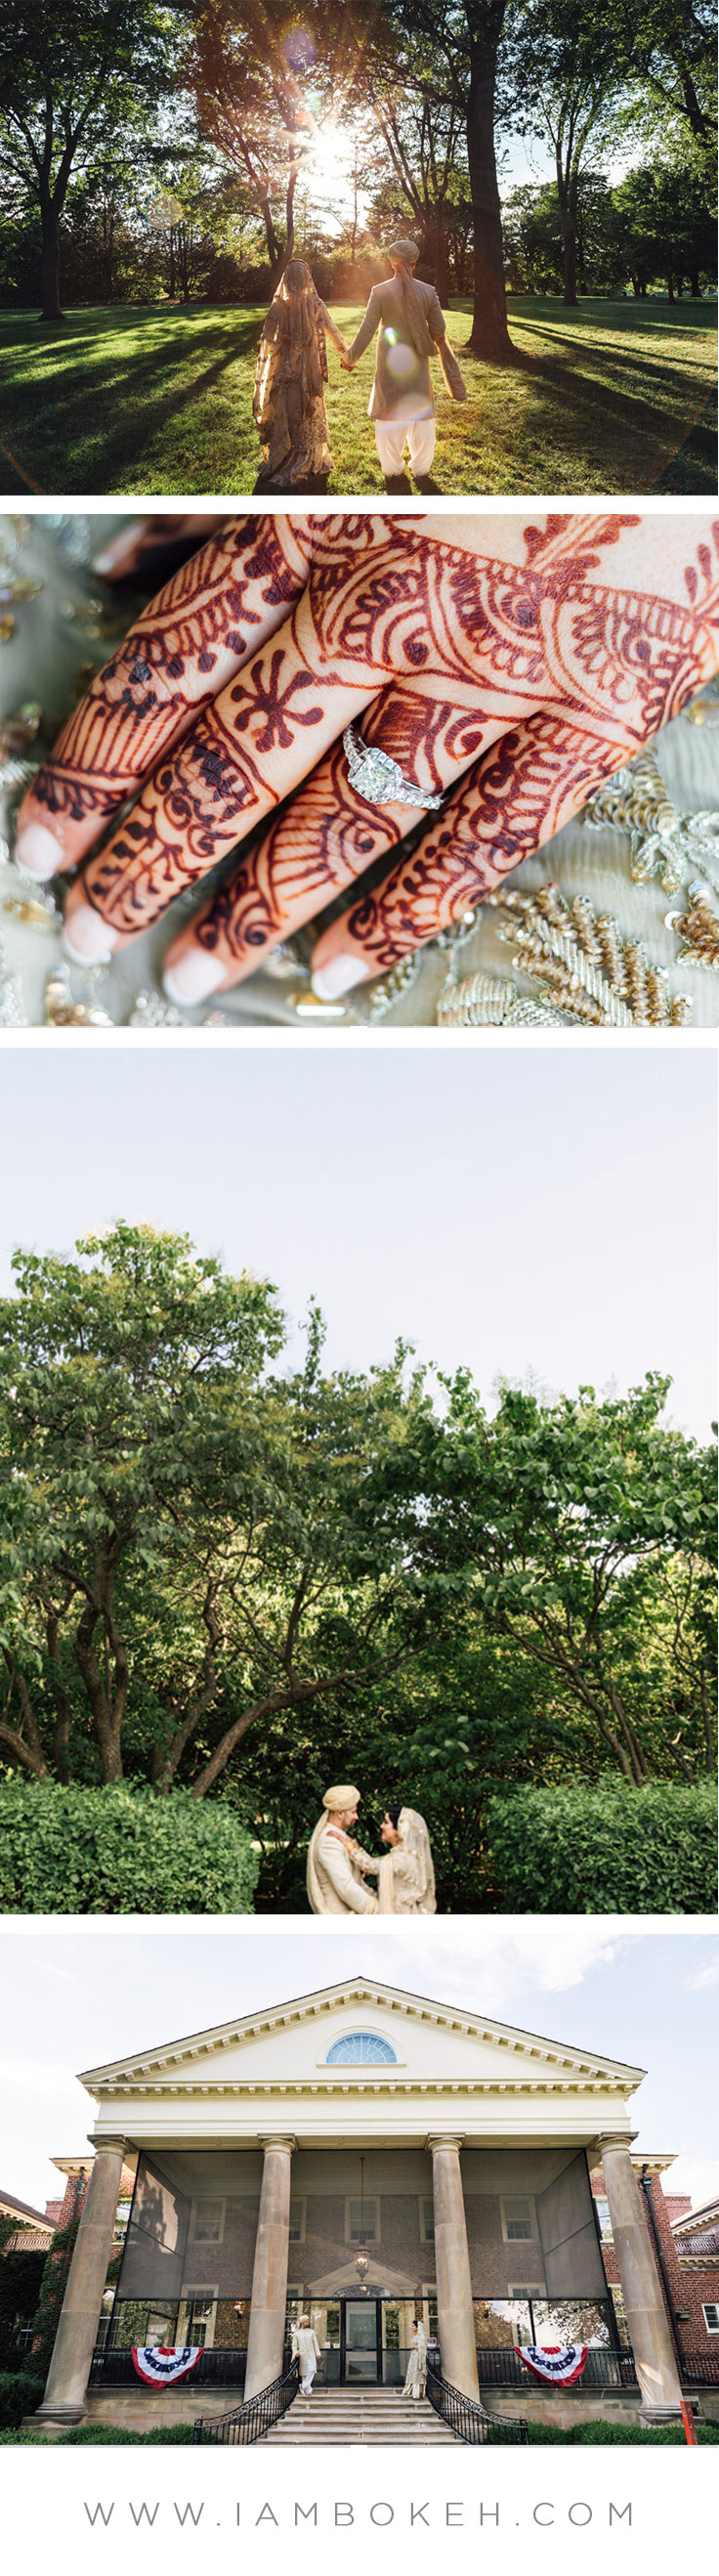 Bokéh Studios | Downers Grove Wedding at Ashyana Banquets: Fahad & Saifra